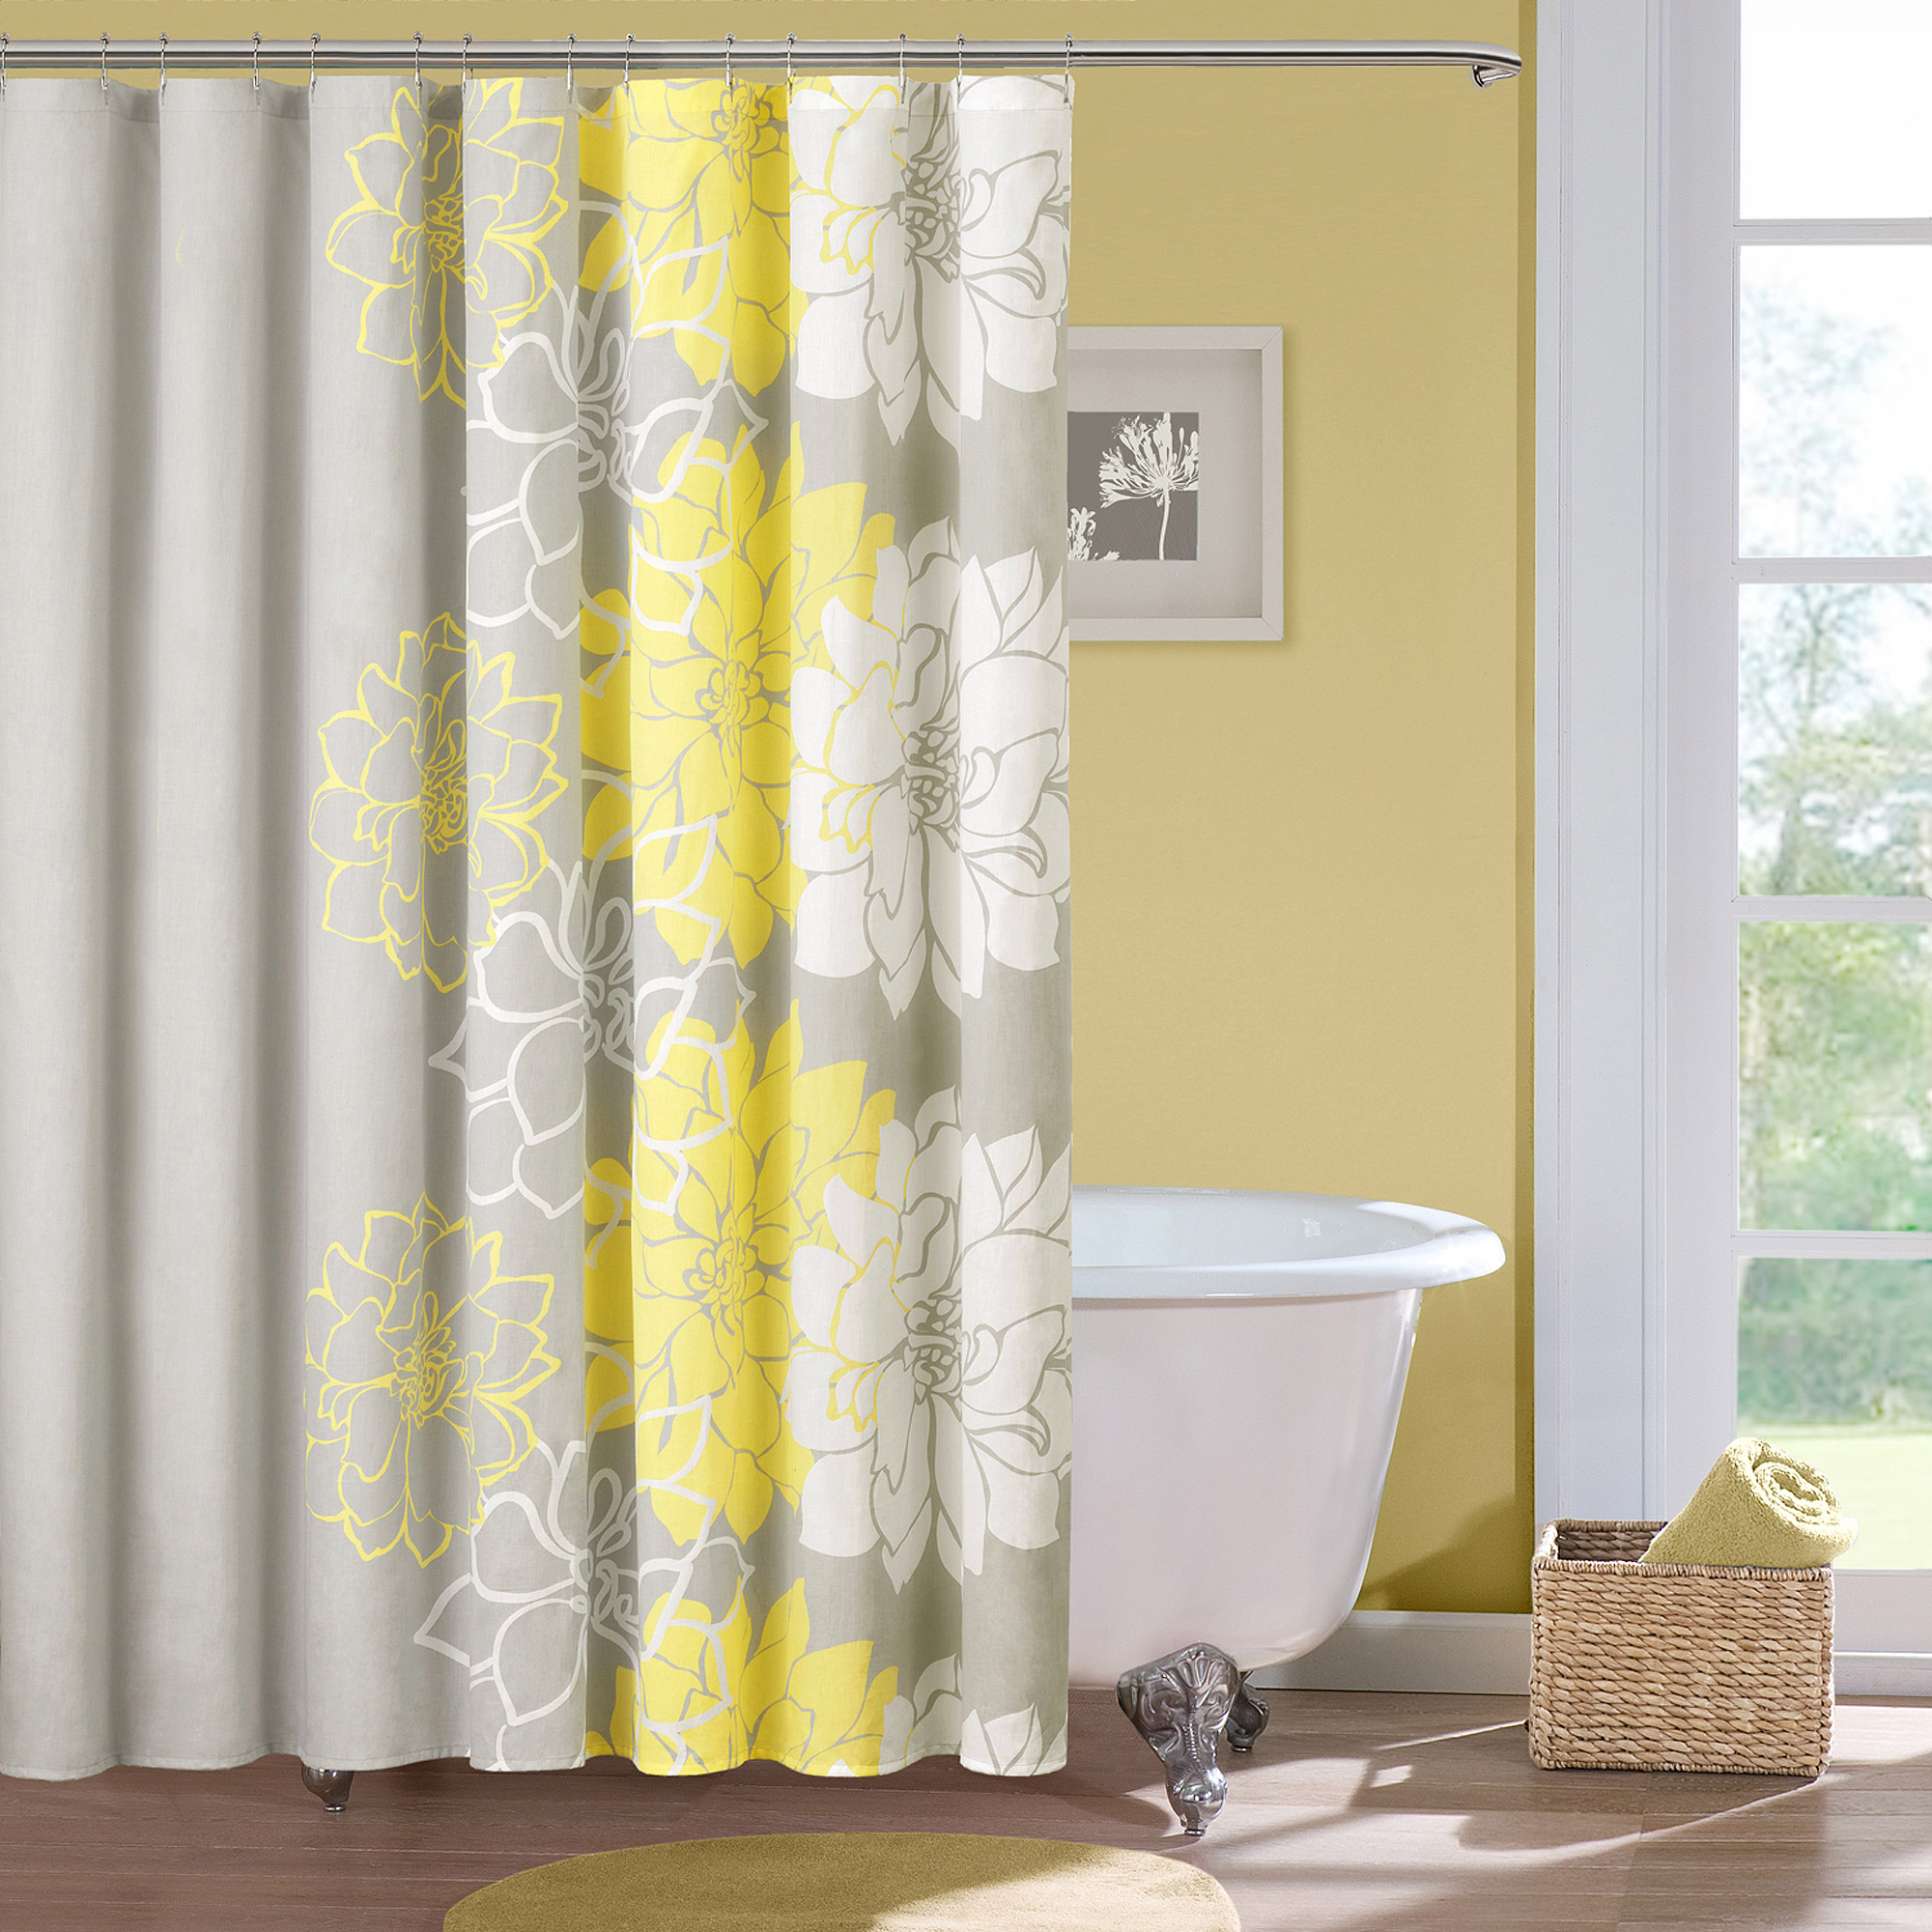 Etonnant Curtains Sears Shower Curtain Kmart Per With Sizing 2000 X